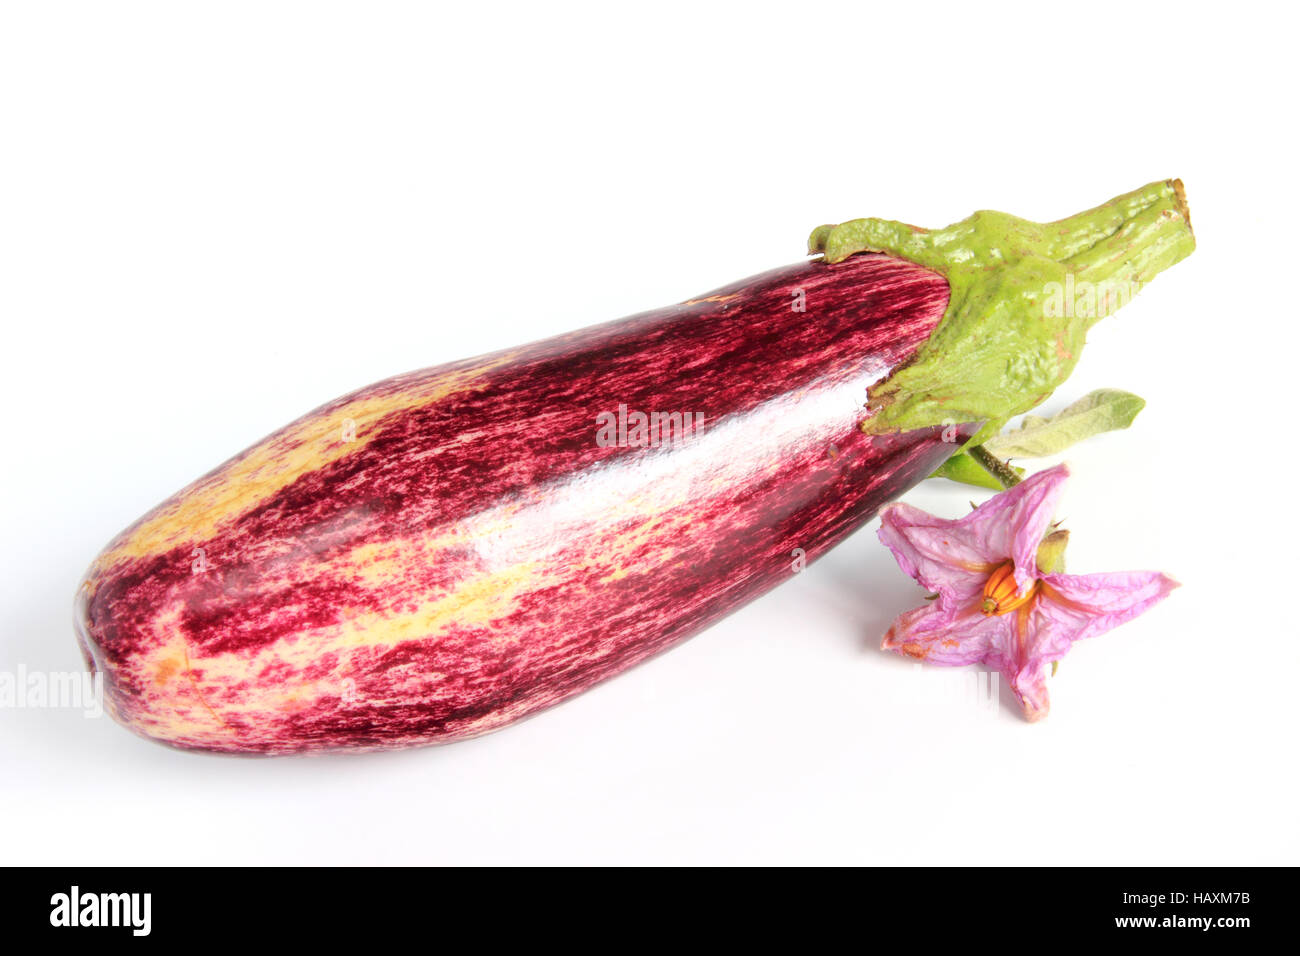 Eggplant (Solanum melongena) Stock Photo